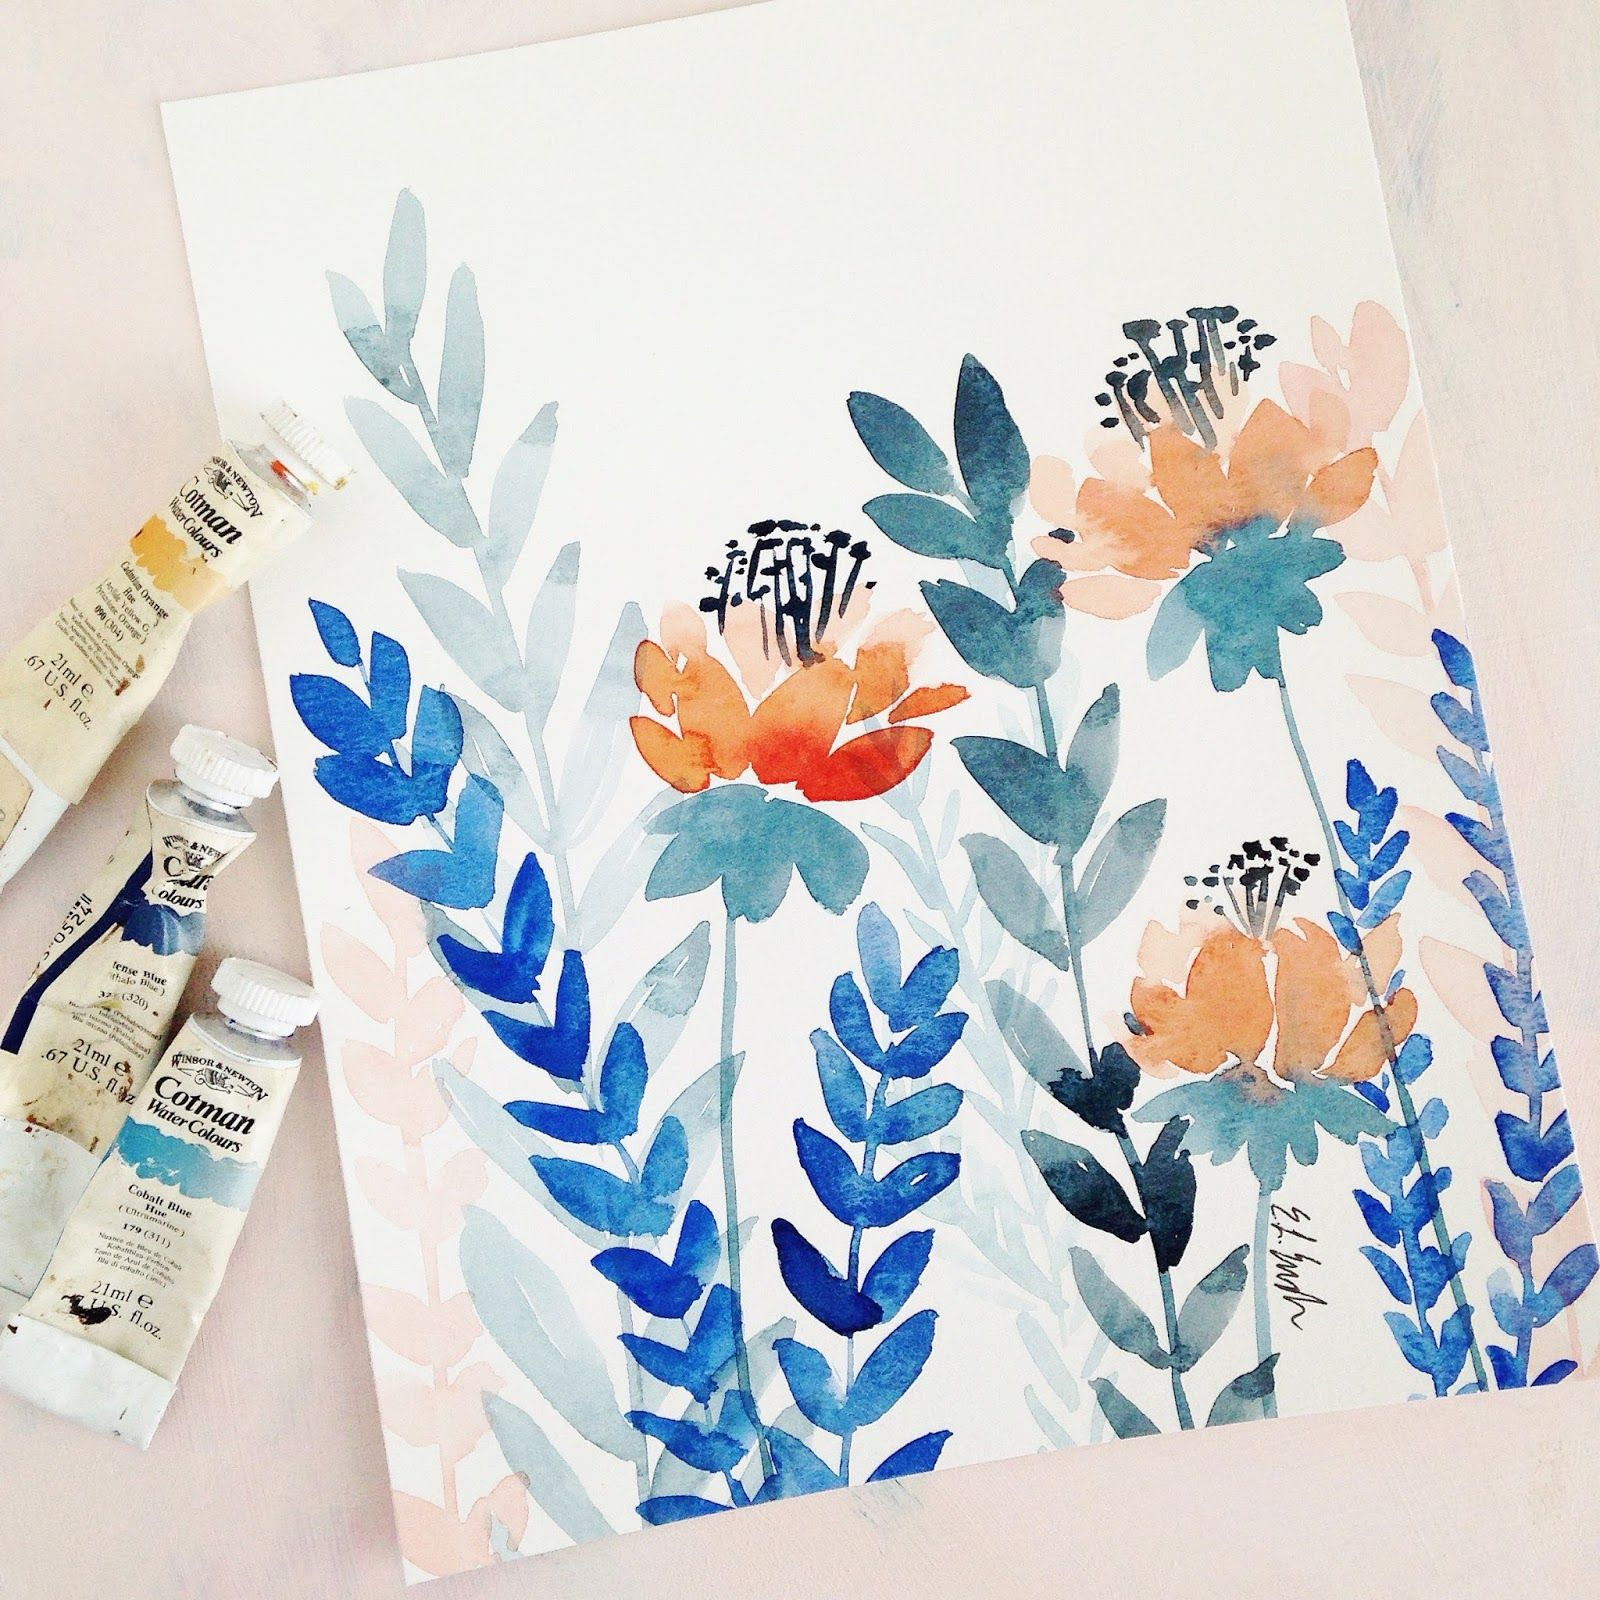 A Creative Blog Featuring Diy Art Projects, Watercolor Paintings, Crafts,